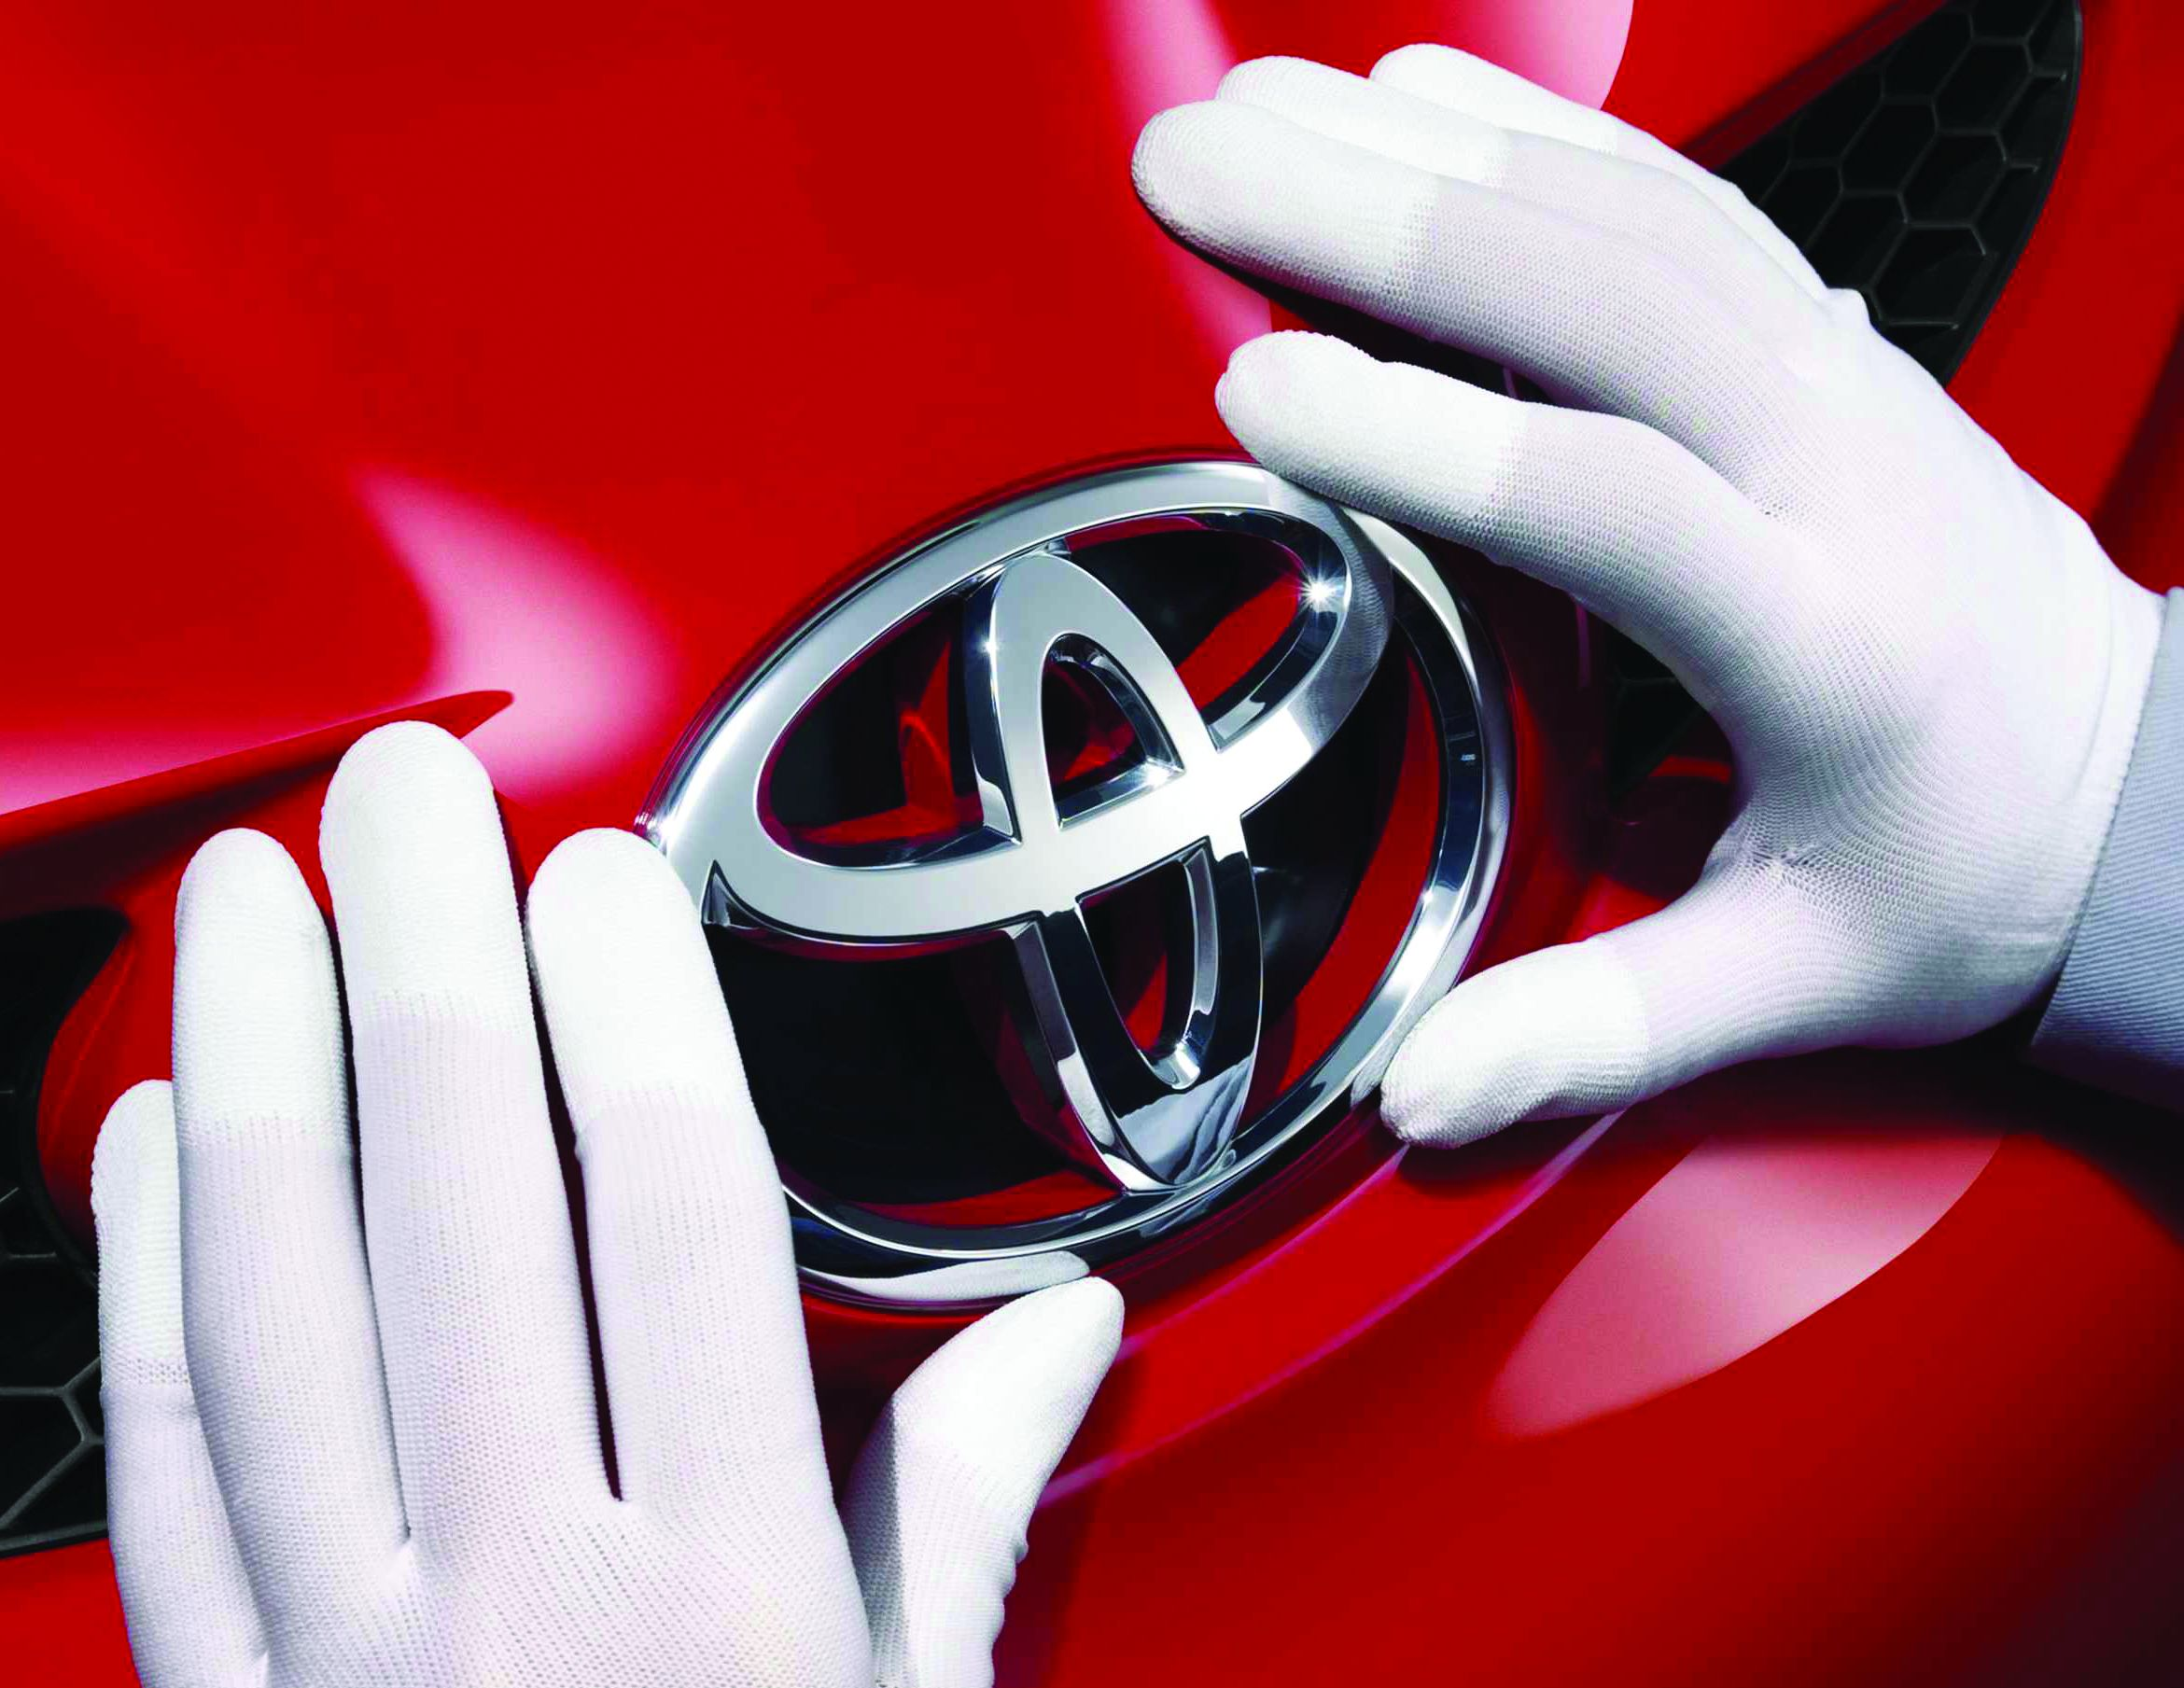 Toyota-Leads-Reliability-Top-Dominated-by-Japanese-Brands